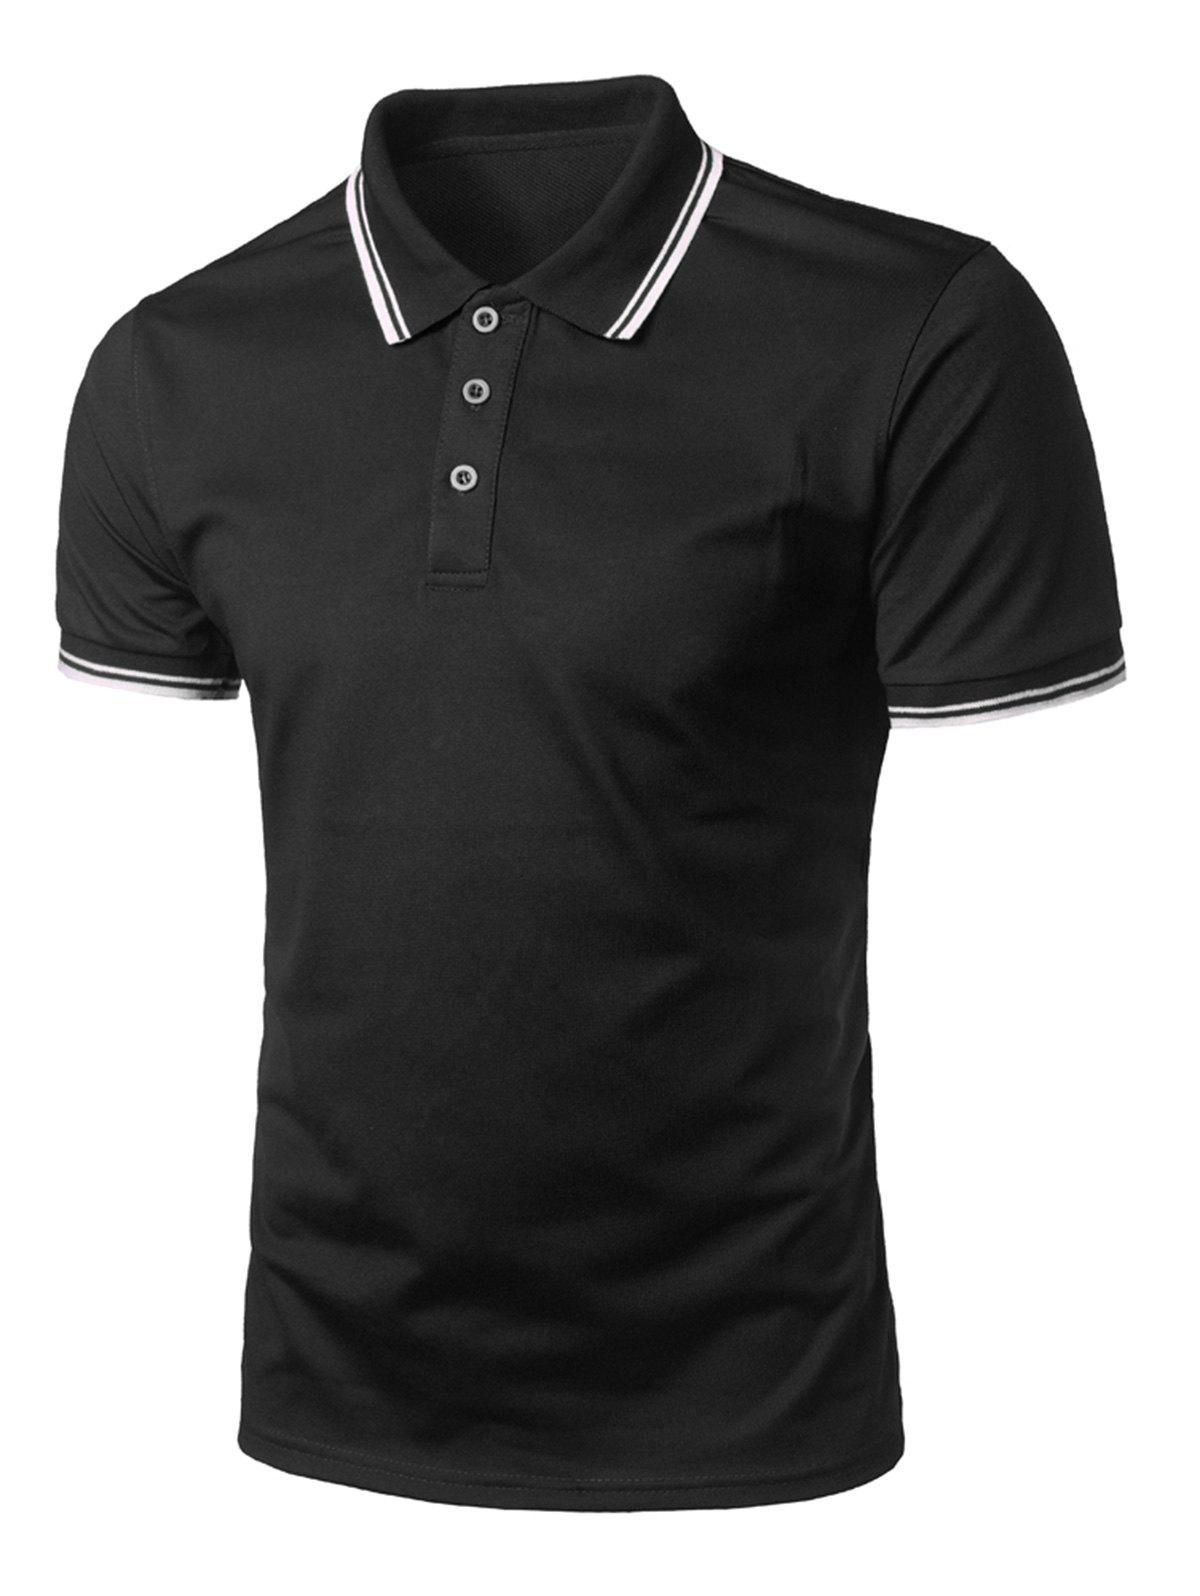 Store Stripe Trim Half Button Casual Polo Shirt